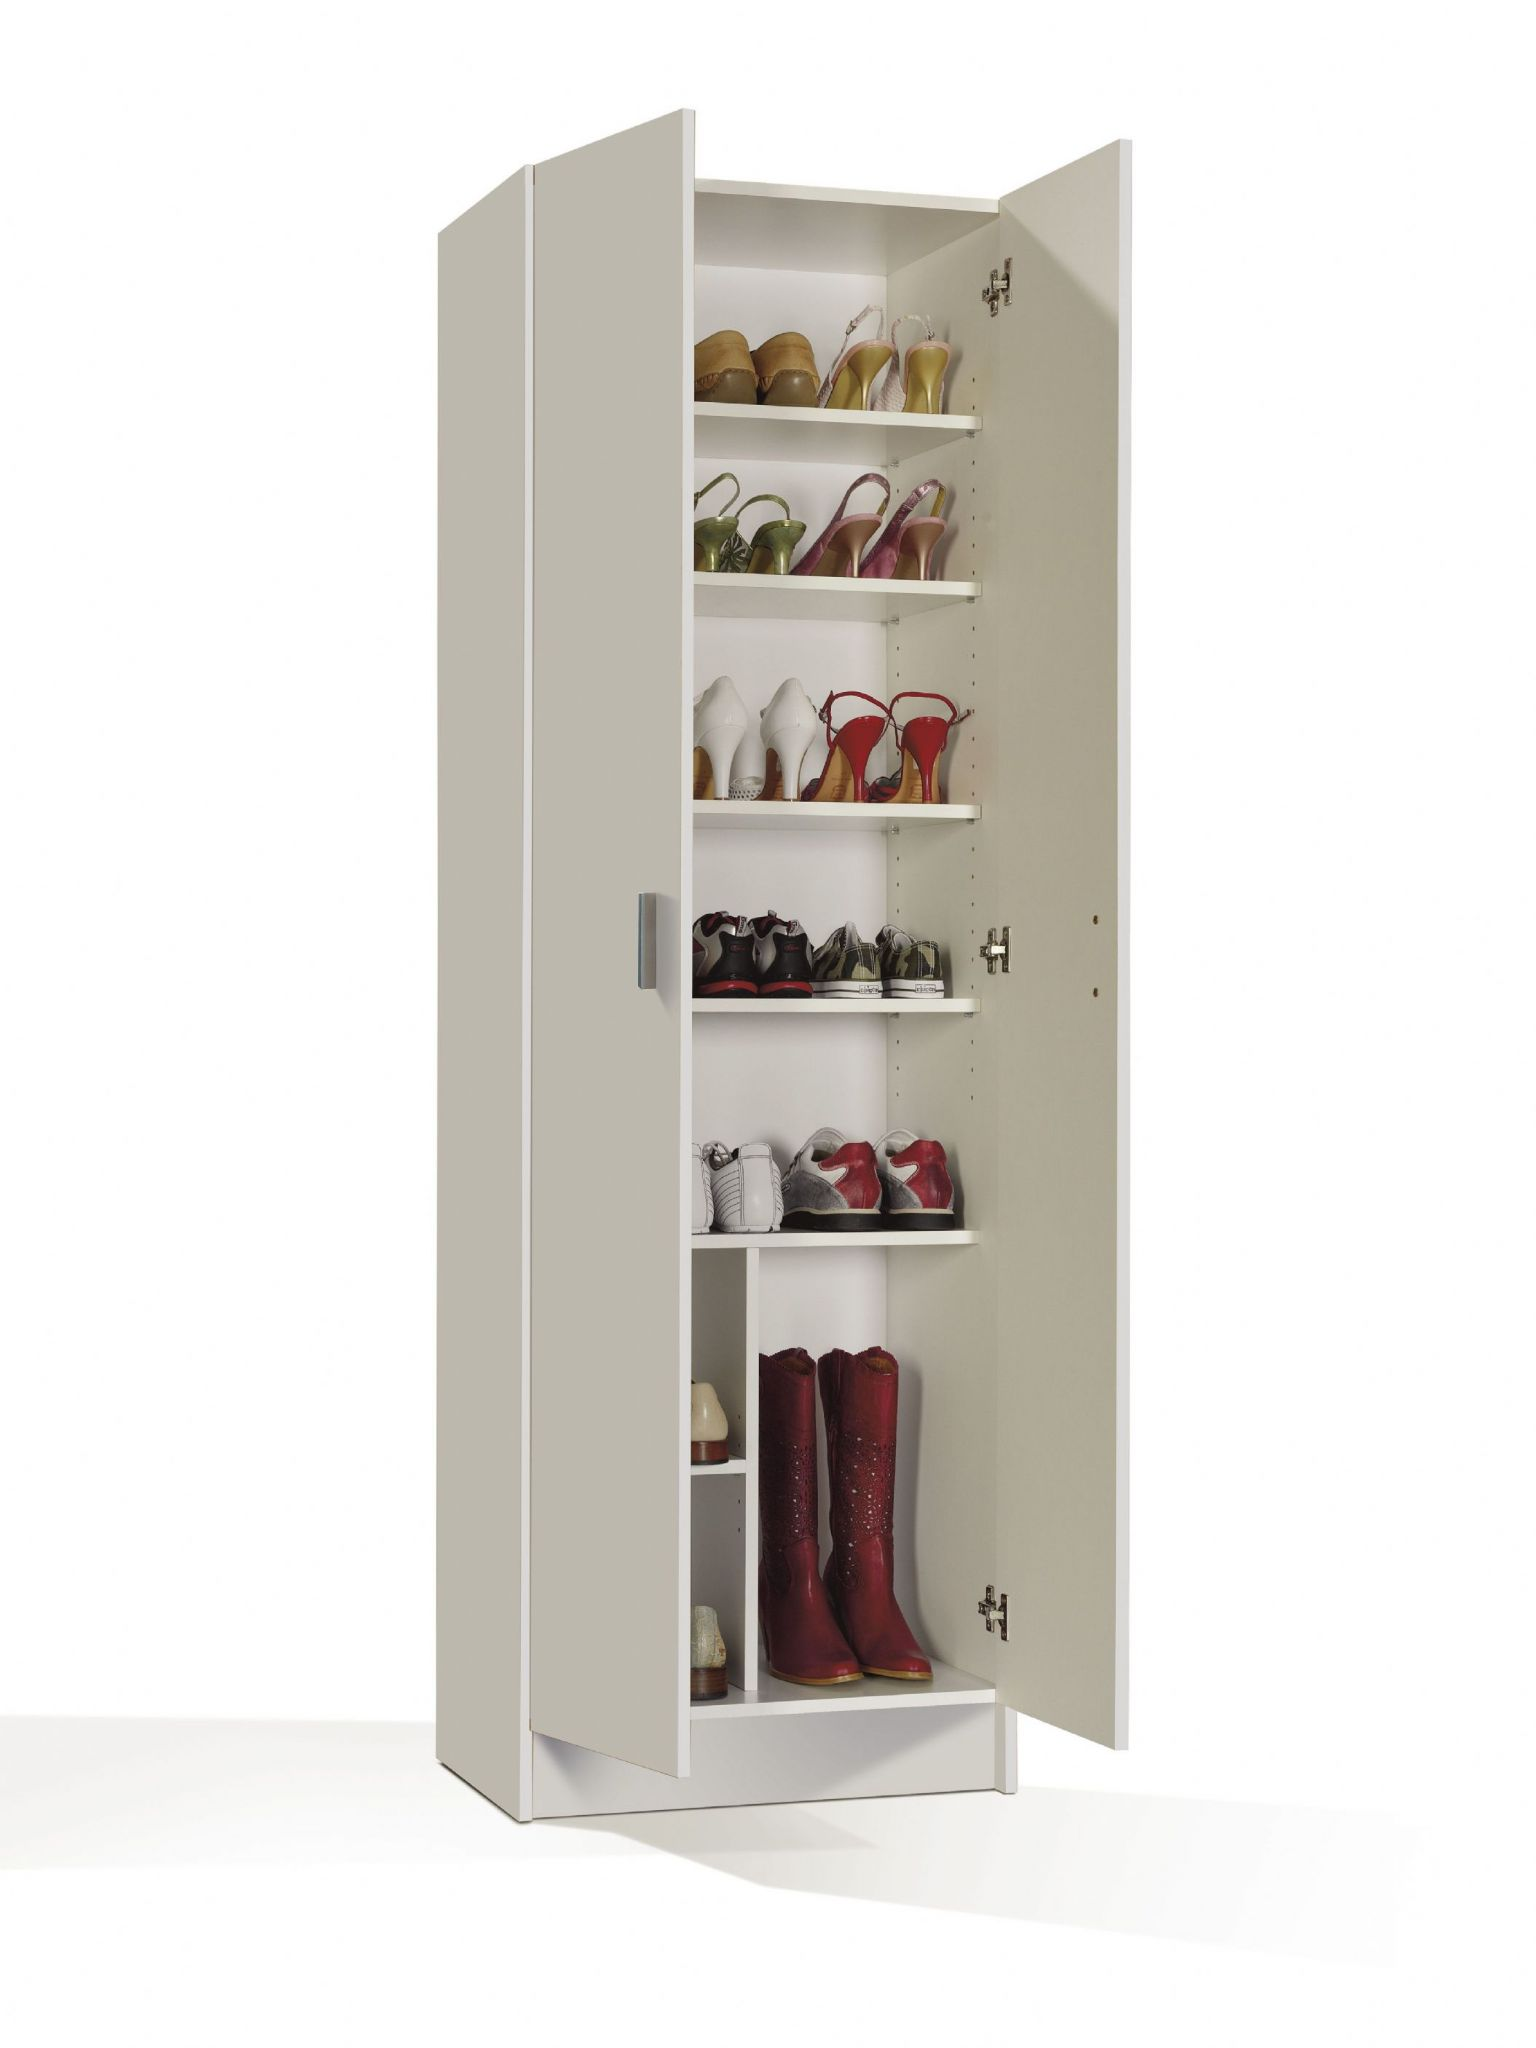 MultiTall White 2 Door Utility Shoe Storage Cupboard Cabinet Armar 2p .  sc 1 st  RONZ Furniture & Large and Small Utility Storage Cupboards - SAVE upto 50% at ...